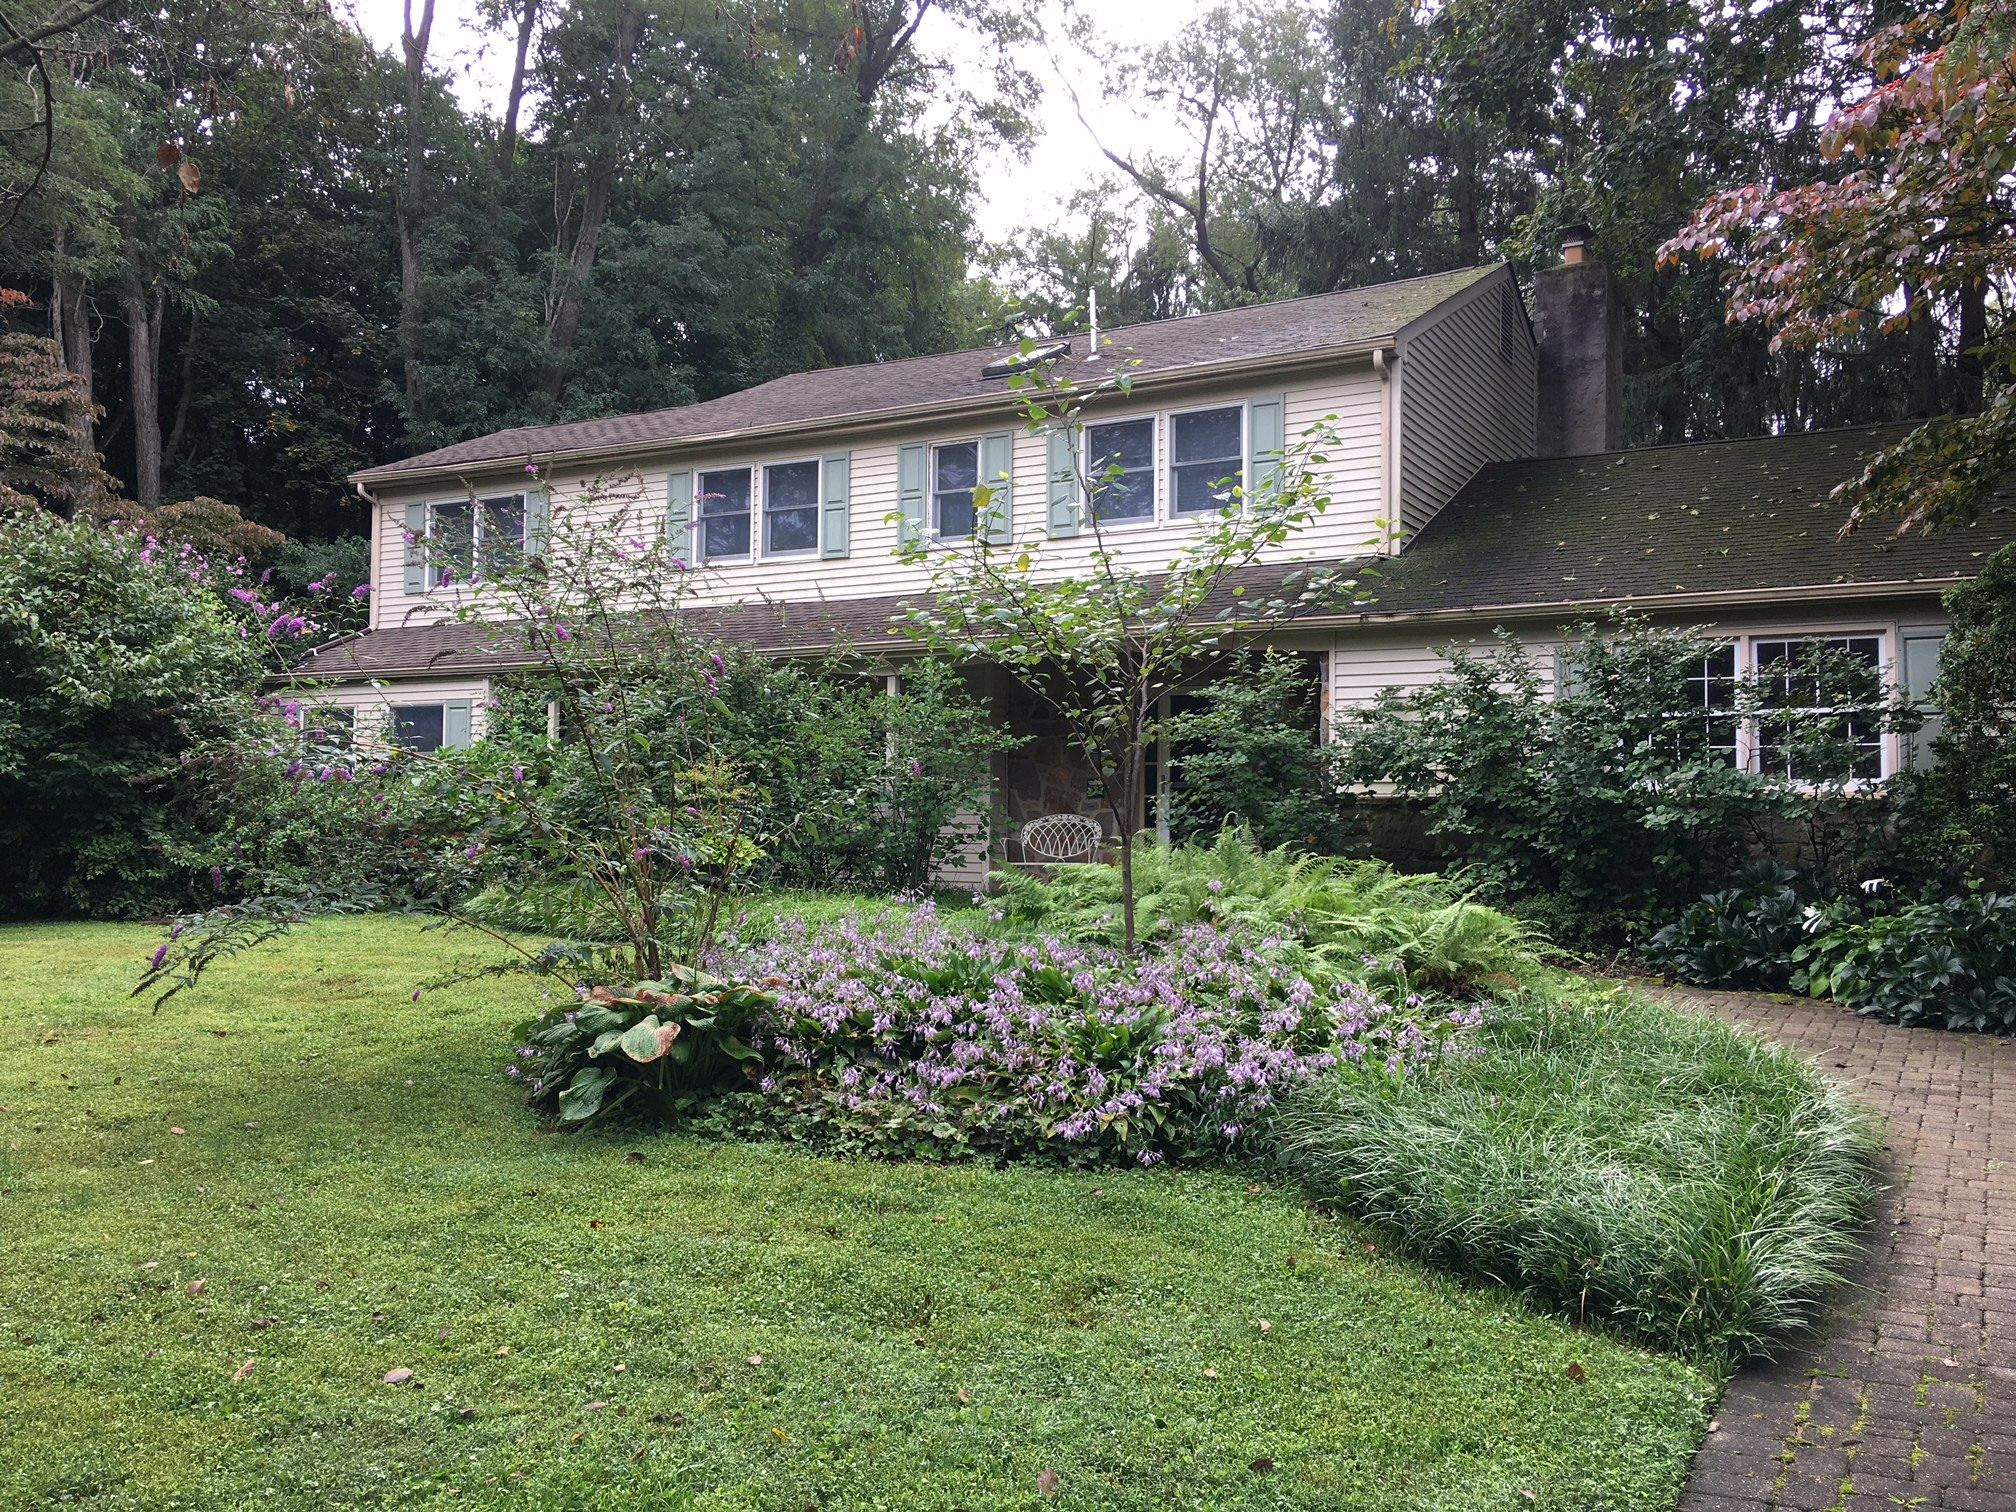 100 wedgewood dr for sale chadds ford pa trulia